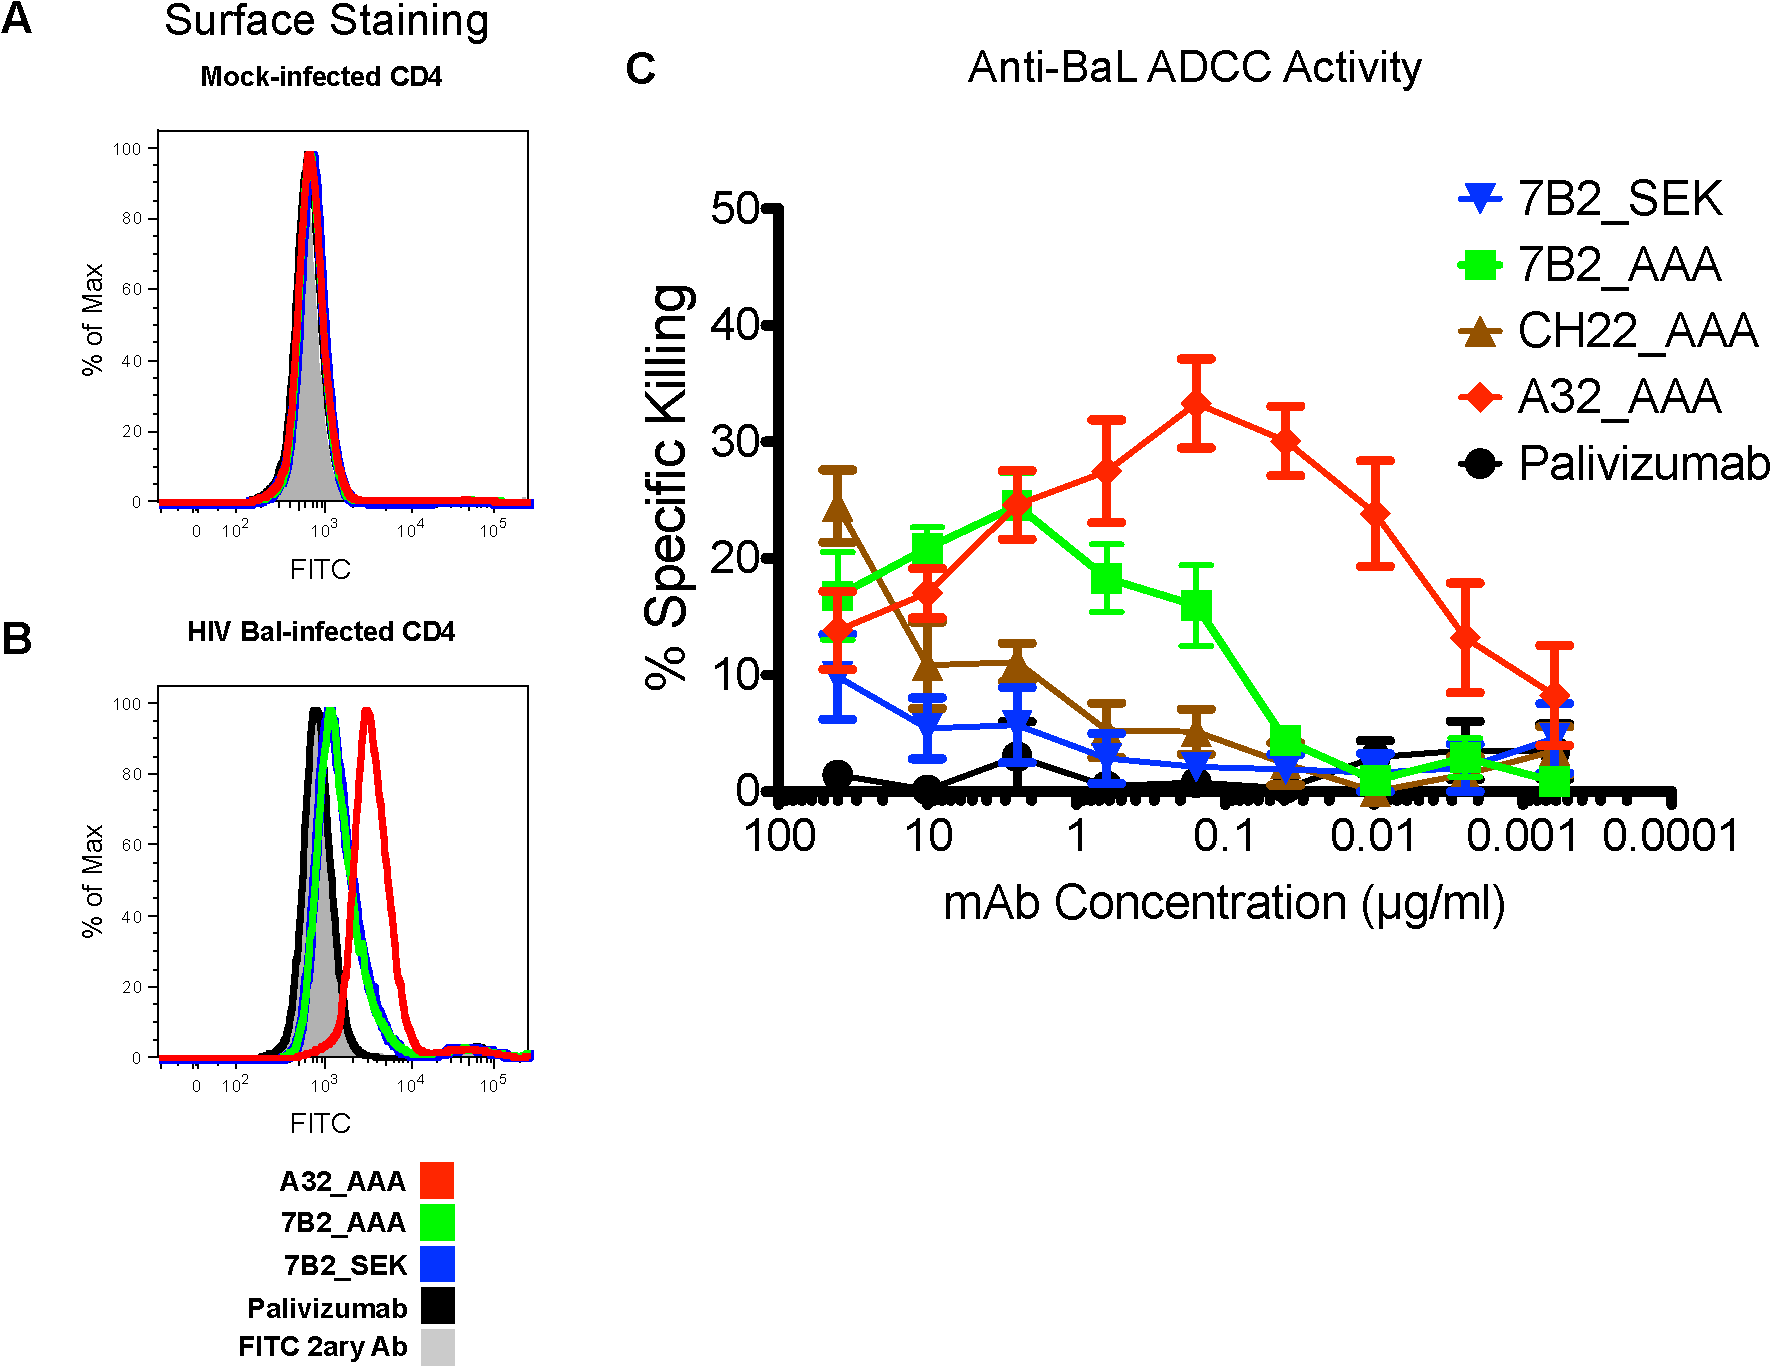 Ability of HIV-1 Env-specific mAbs to bind HIV-1 infected cells and mediate ADCC.